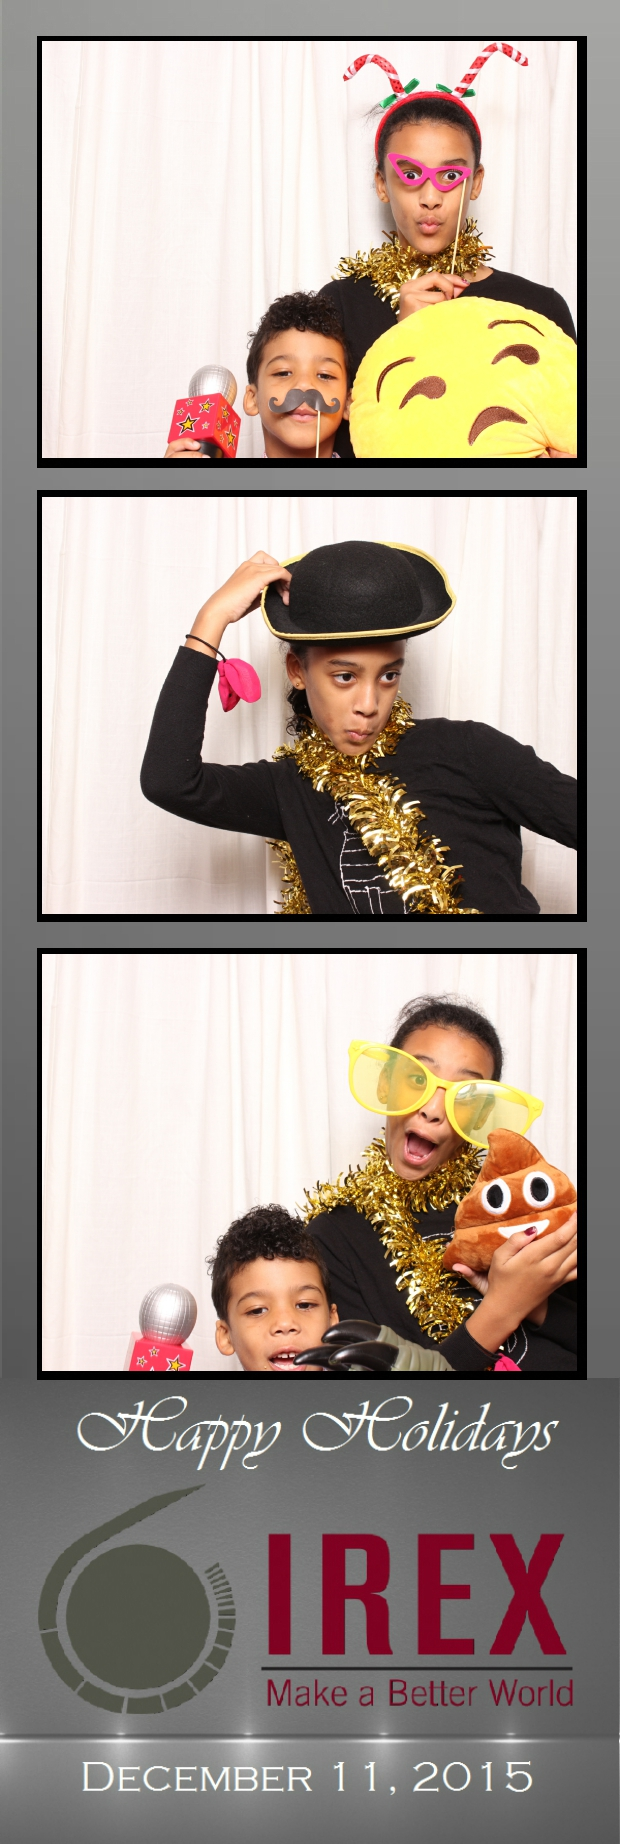 Guest House Events Photo Booth Strips IREX (18).jpg